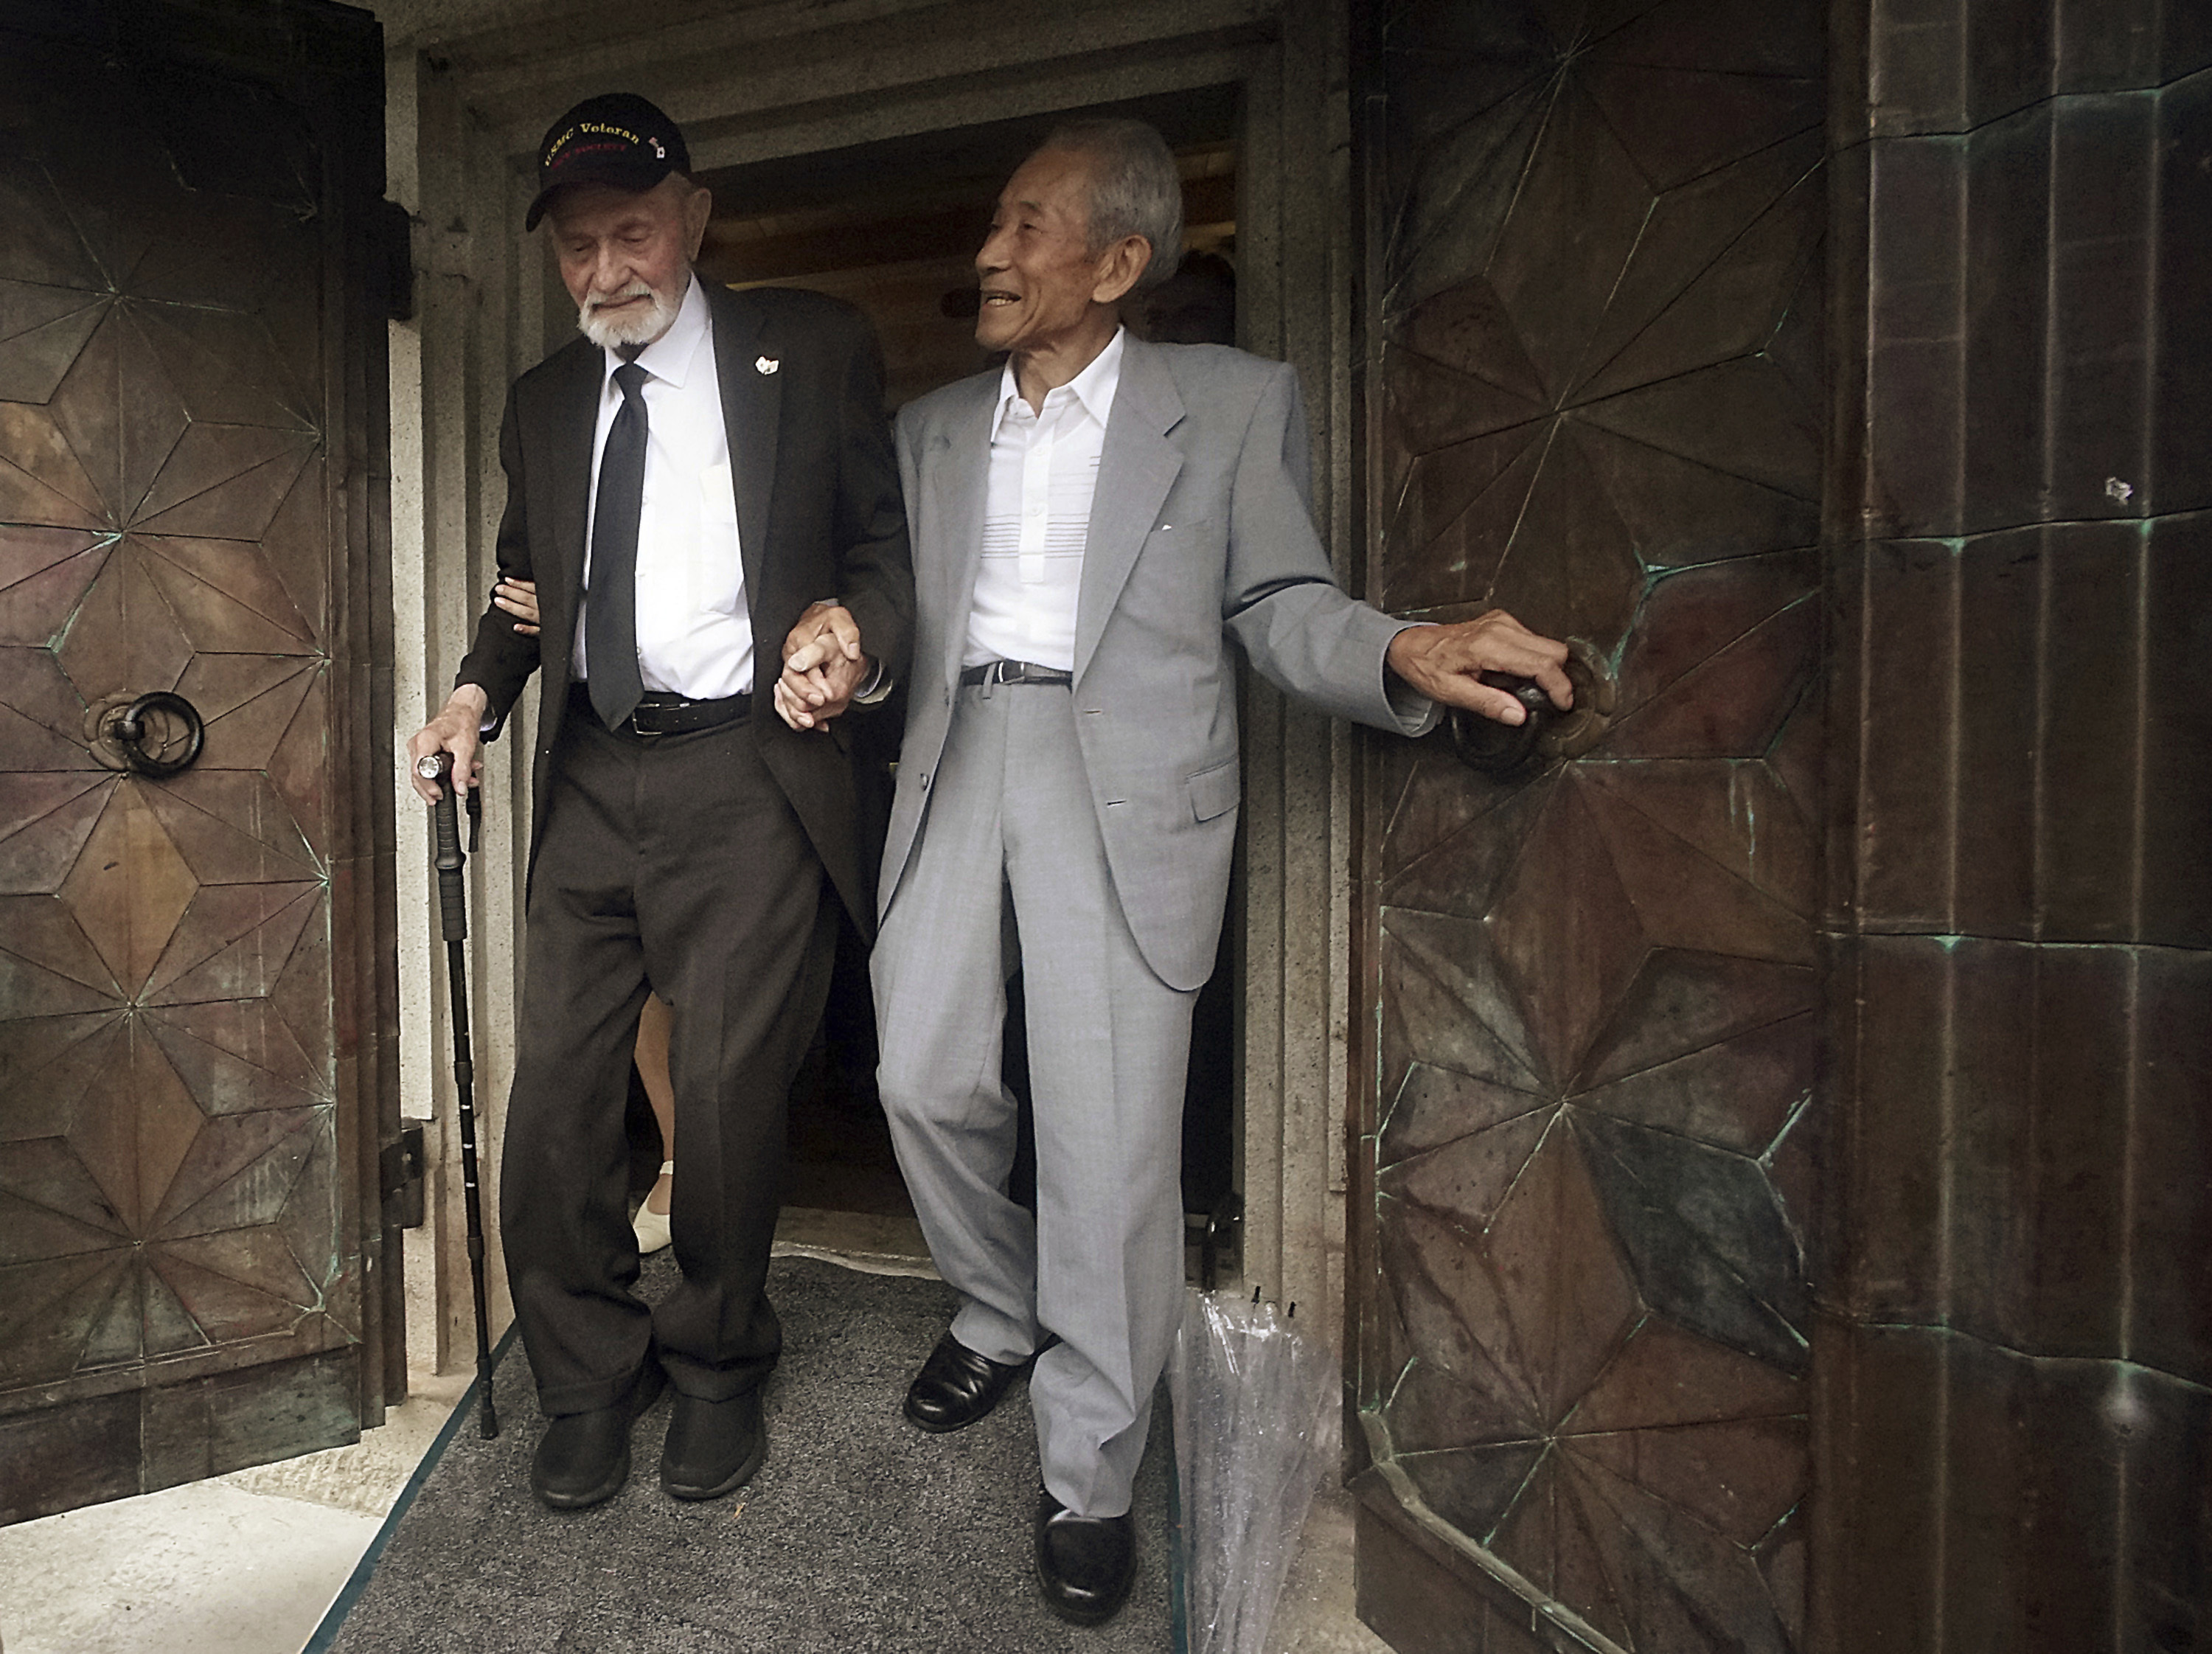 Tatsuya Yasue, right, and WWII veteran Marvin Strombo walk together out from a village's war memorial prior to a ceremony in Higashishirakawa, in central Japan's Gifu prefecture Tuesday, Aug. 15, 2017. (Eugene Hoshiko/AP)